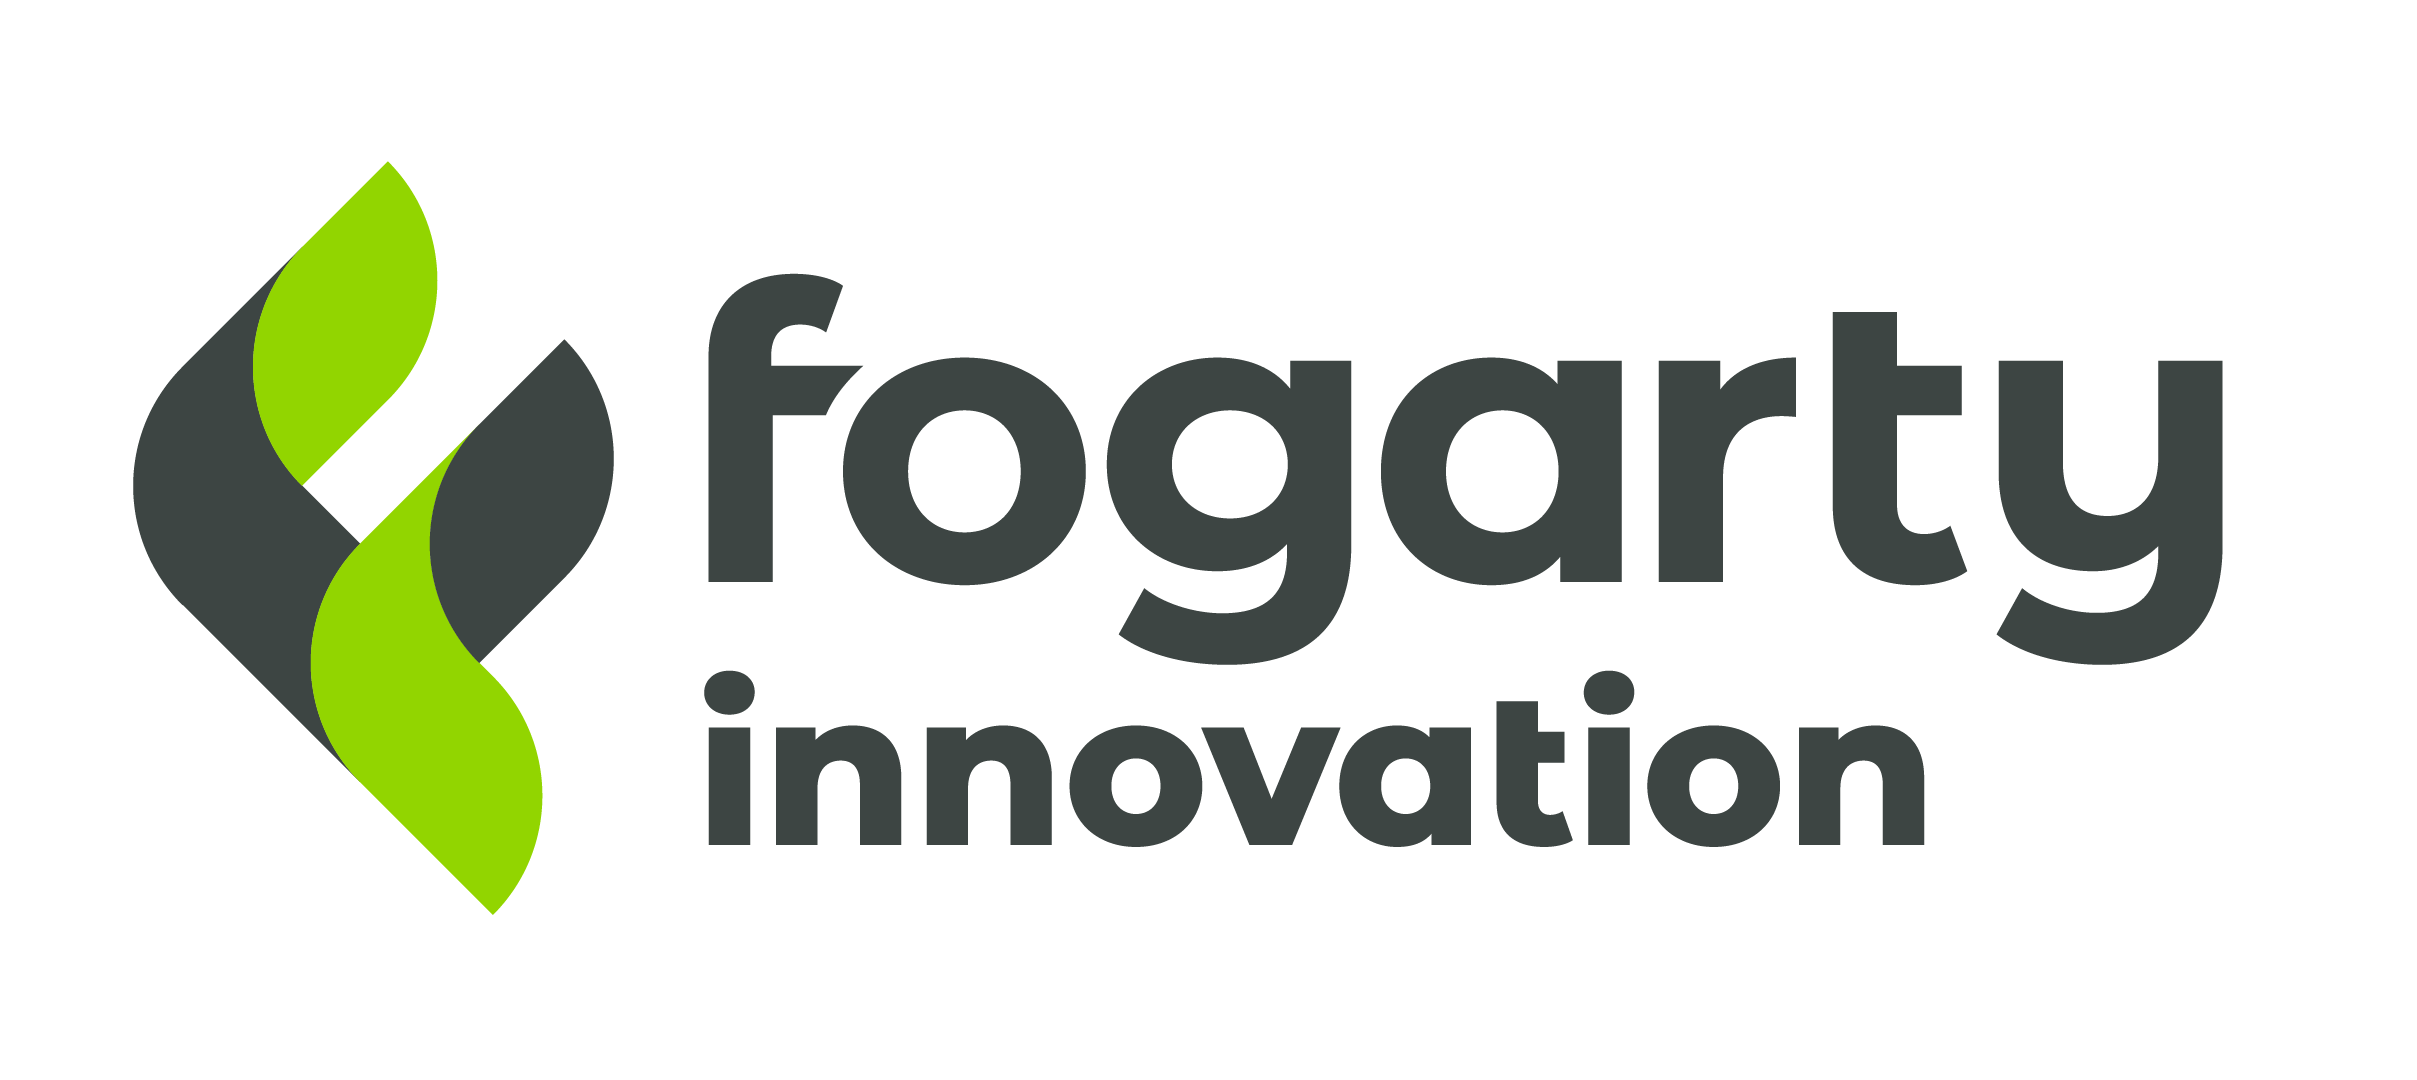 Fogarty Innovation